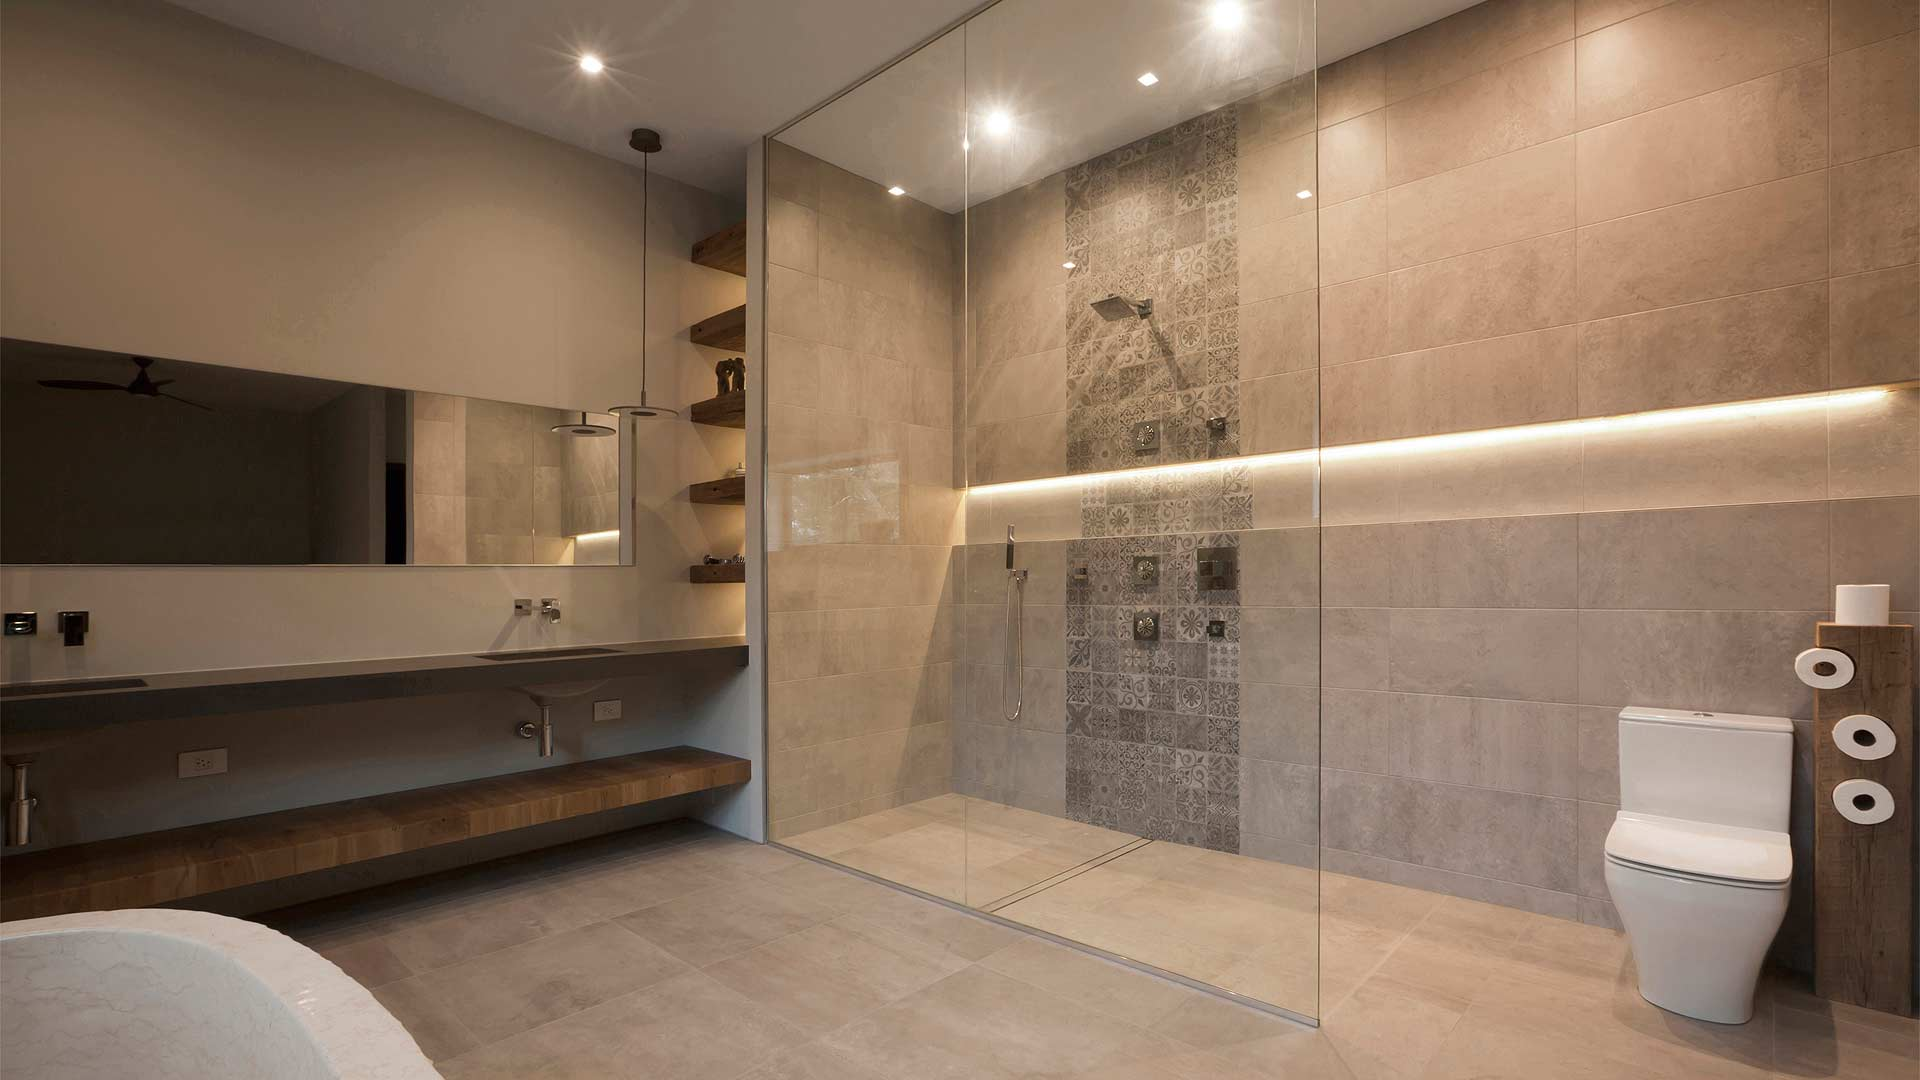 Master Spa with double vanity, massive shower, and tub carved from solid block of stone - Minimalist Modern - Indian Head Park - Chicago, Illinois - HAUS | Architecture For Modern Lifestyles, Christopher Short, Indianapolis Architect with Joe Trojanowski